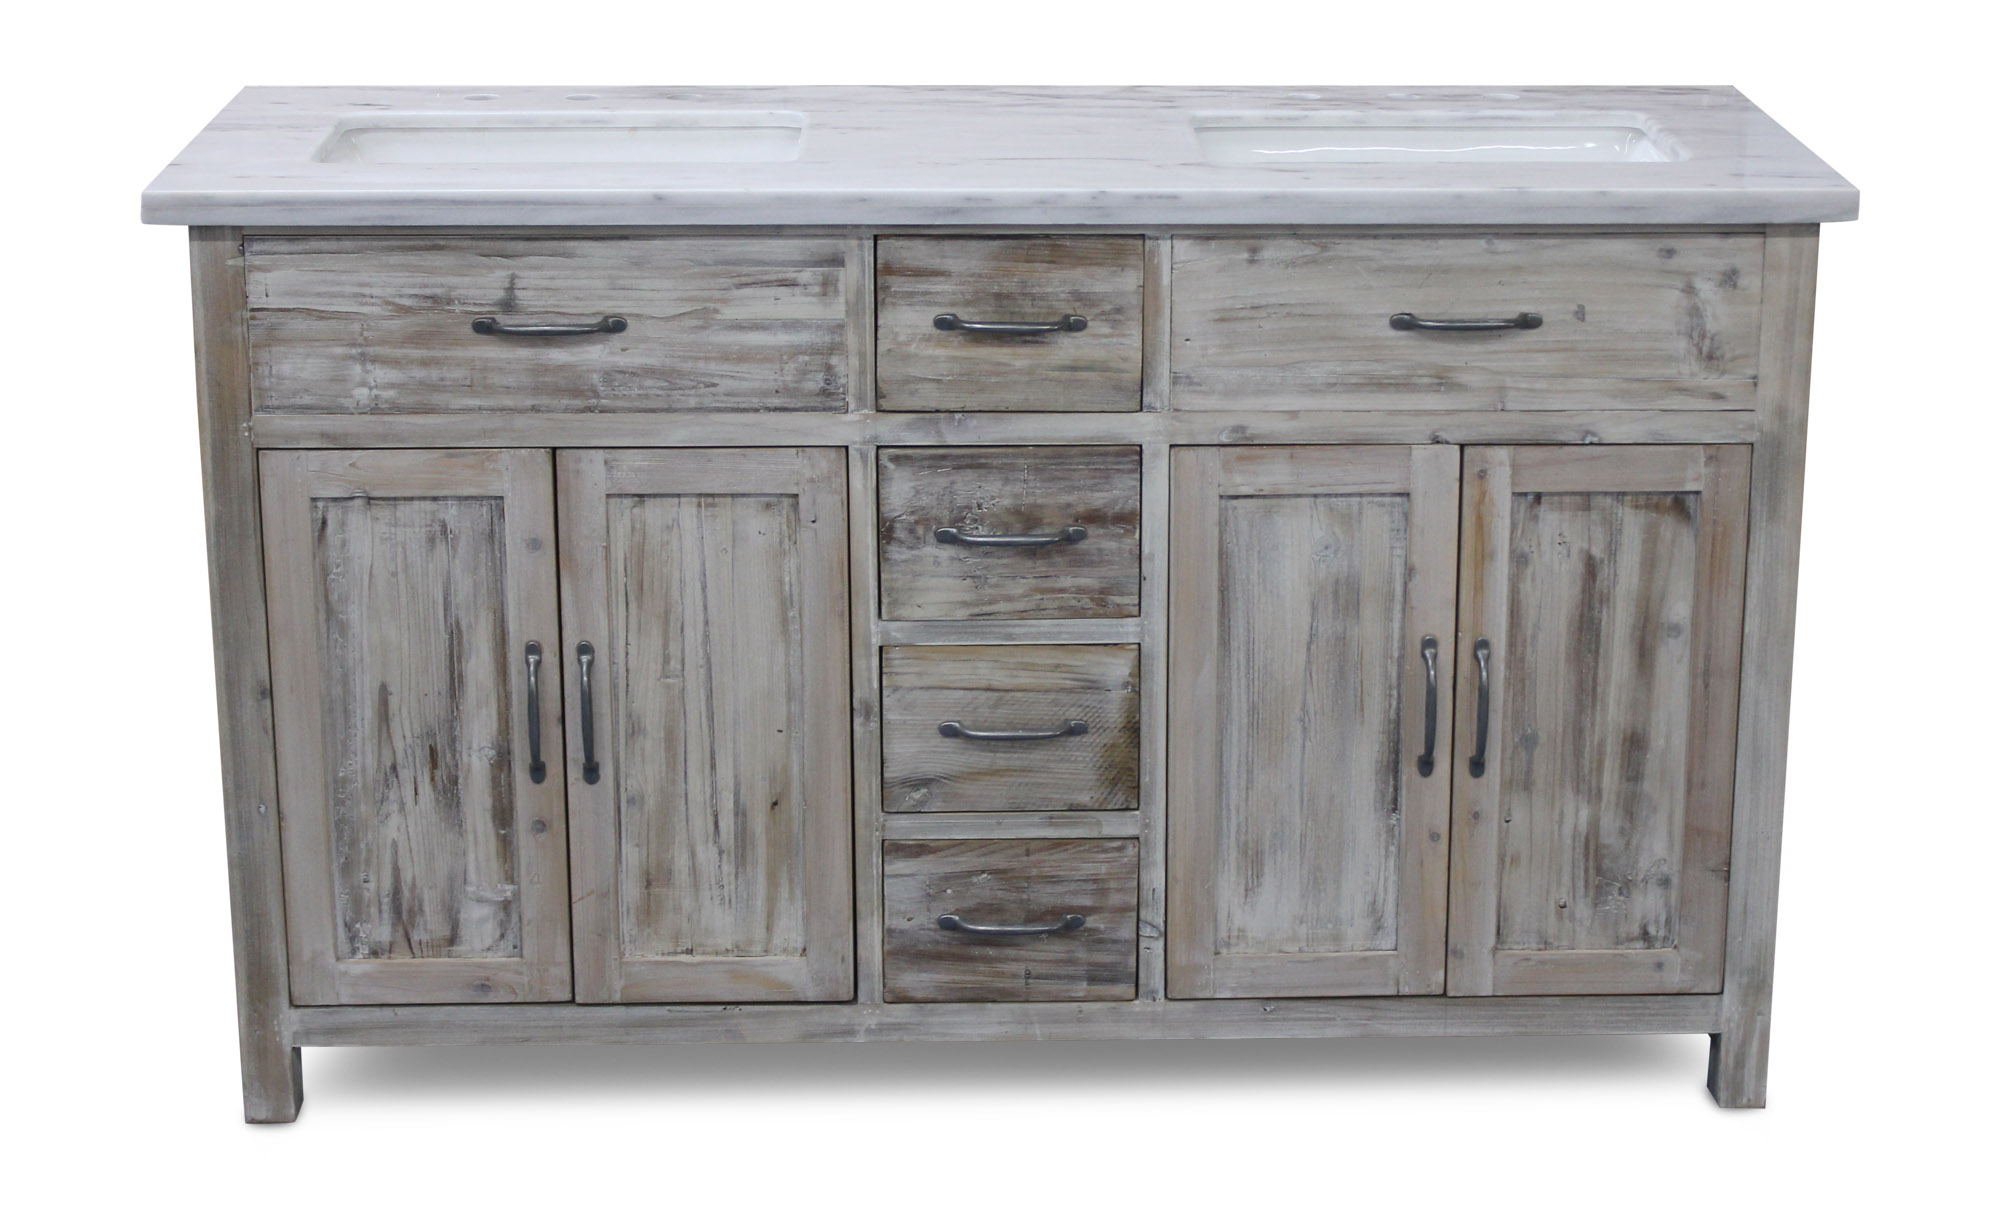 55 Inch Bathroom Vanity. 59 75 Woodland Italian Carrara Marble White Washed Pine